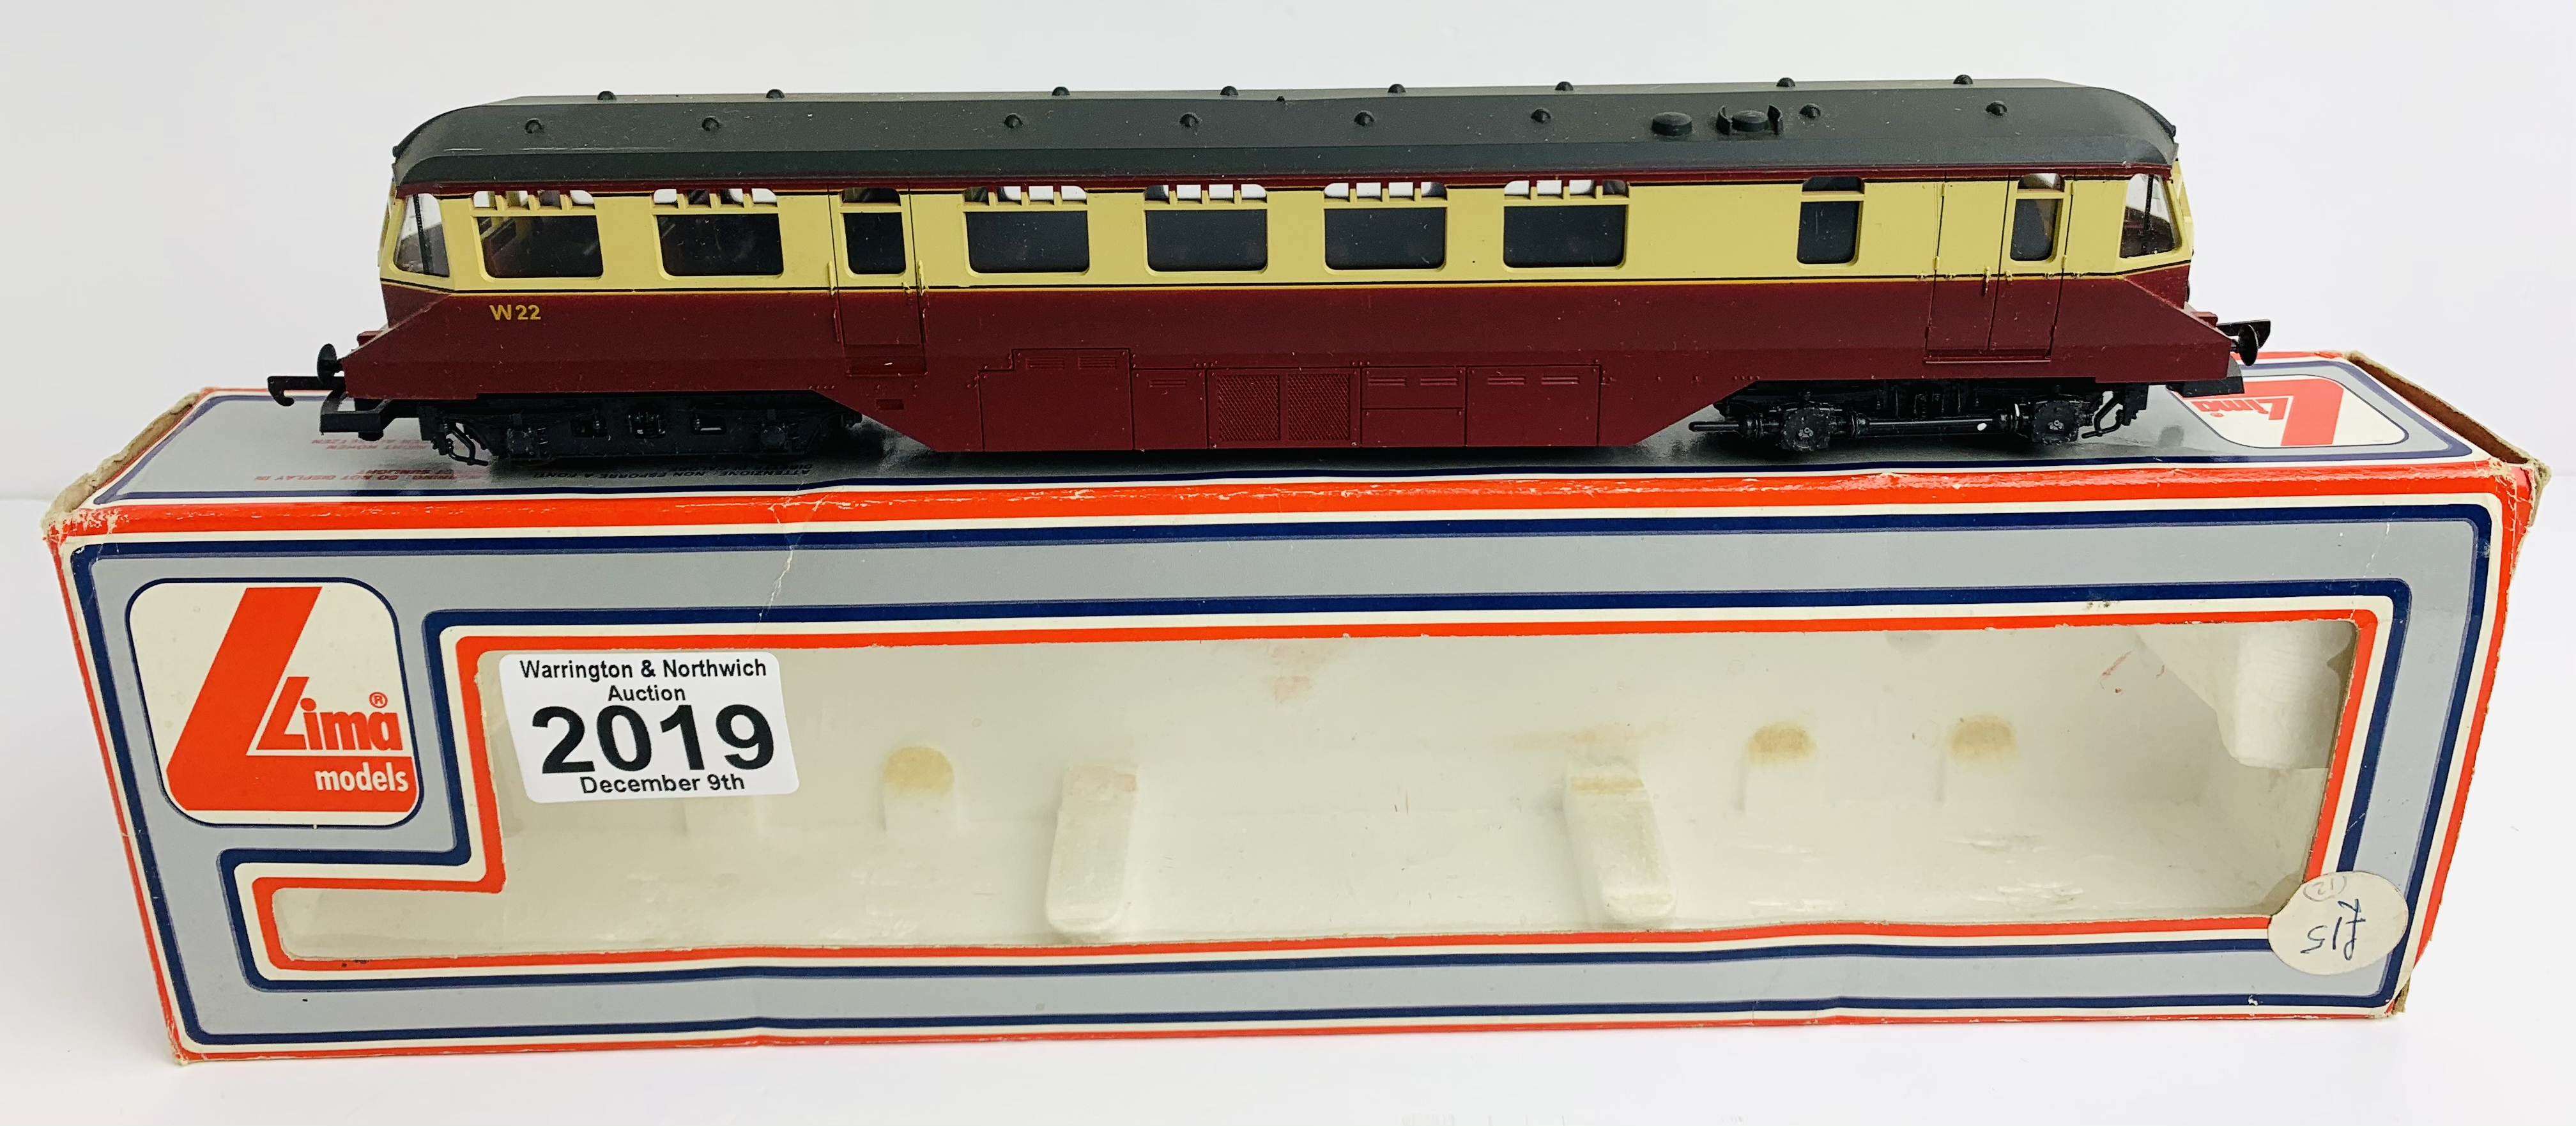 Lima 205133 BR Red/Cream Rail Car Loco - Boxed P&P Group 1 (£14+VAT for the first lot and £1+VAT for